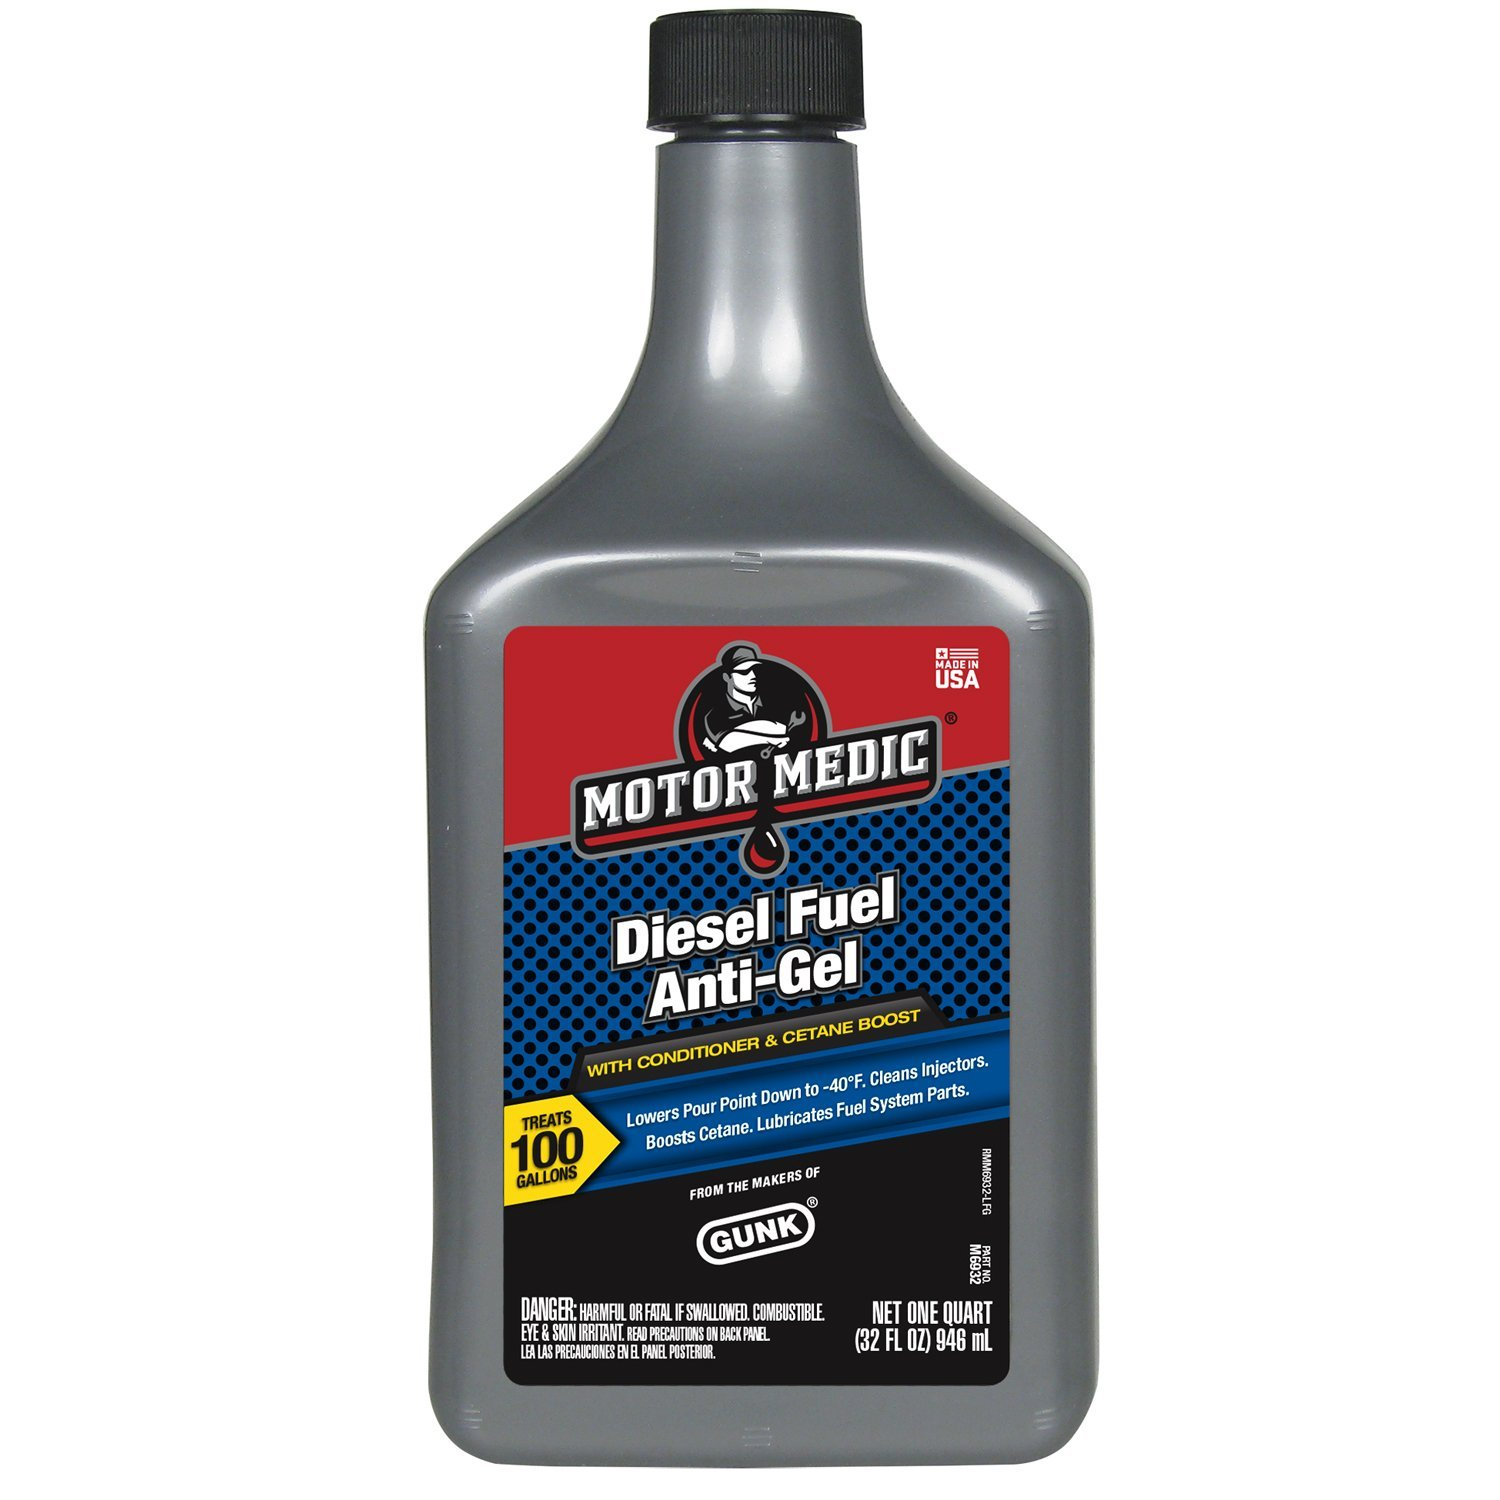 Motor Medic M6932-12PK Diesel Fuel Anti-Gel with Conditioner and Cetaine Boost - 32 oz., (Case of 12)